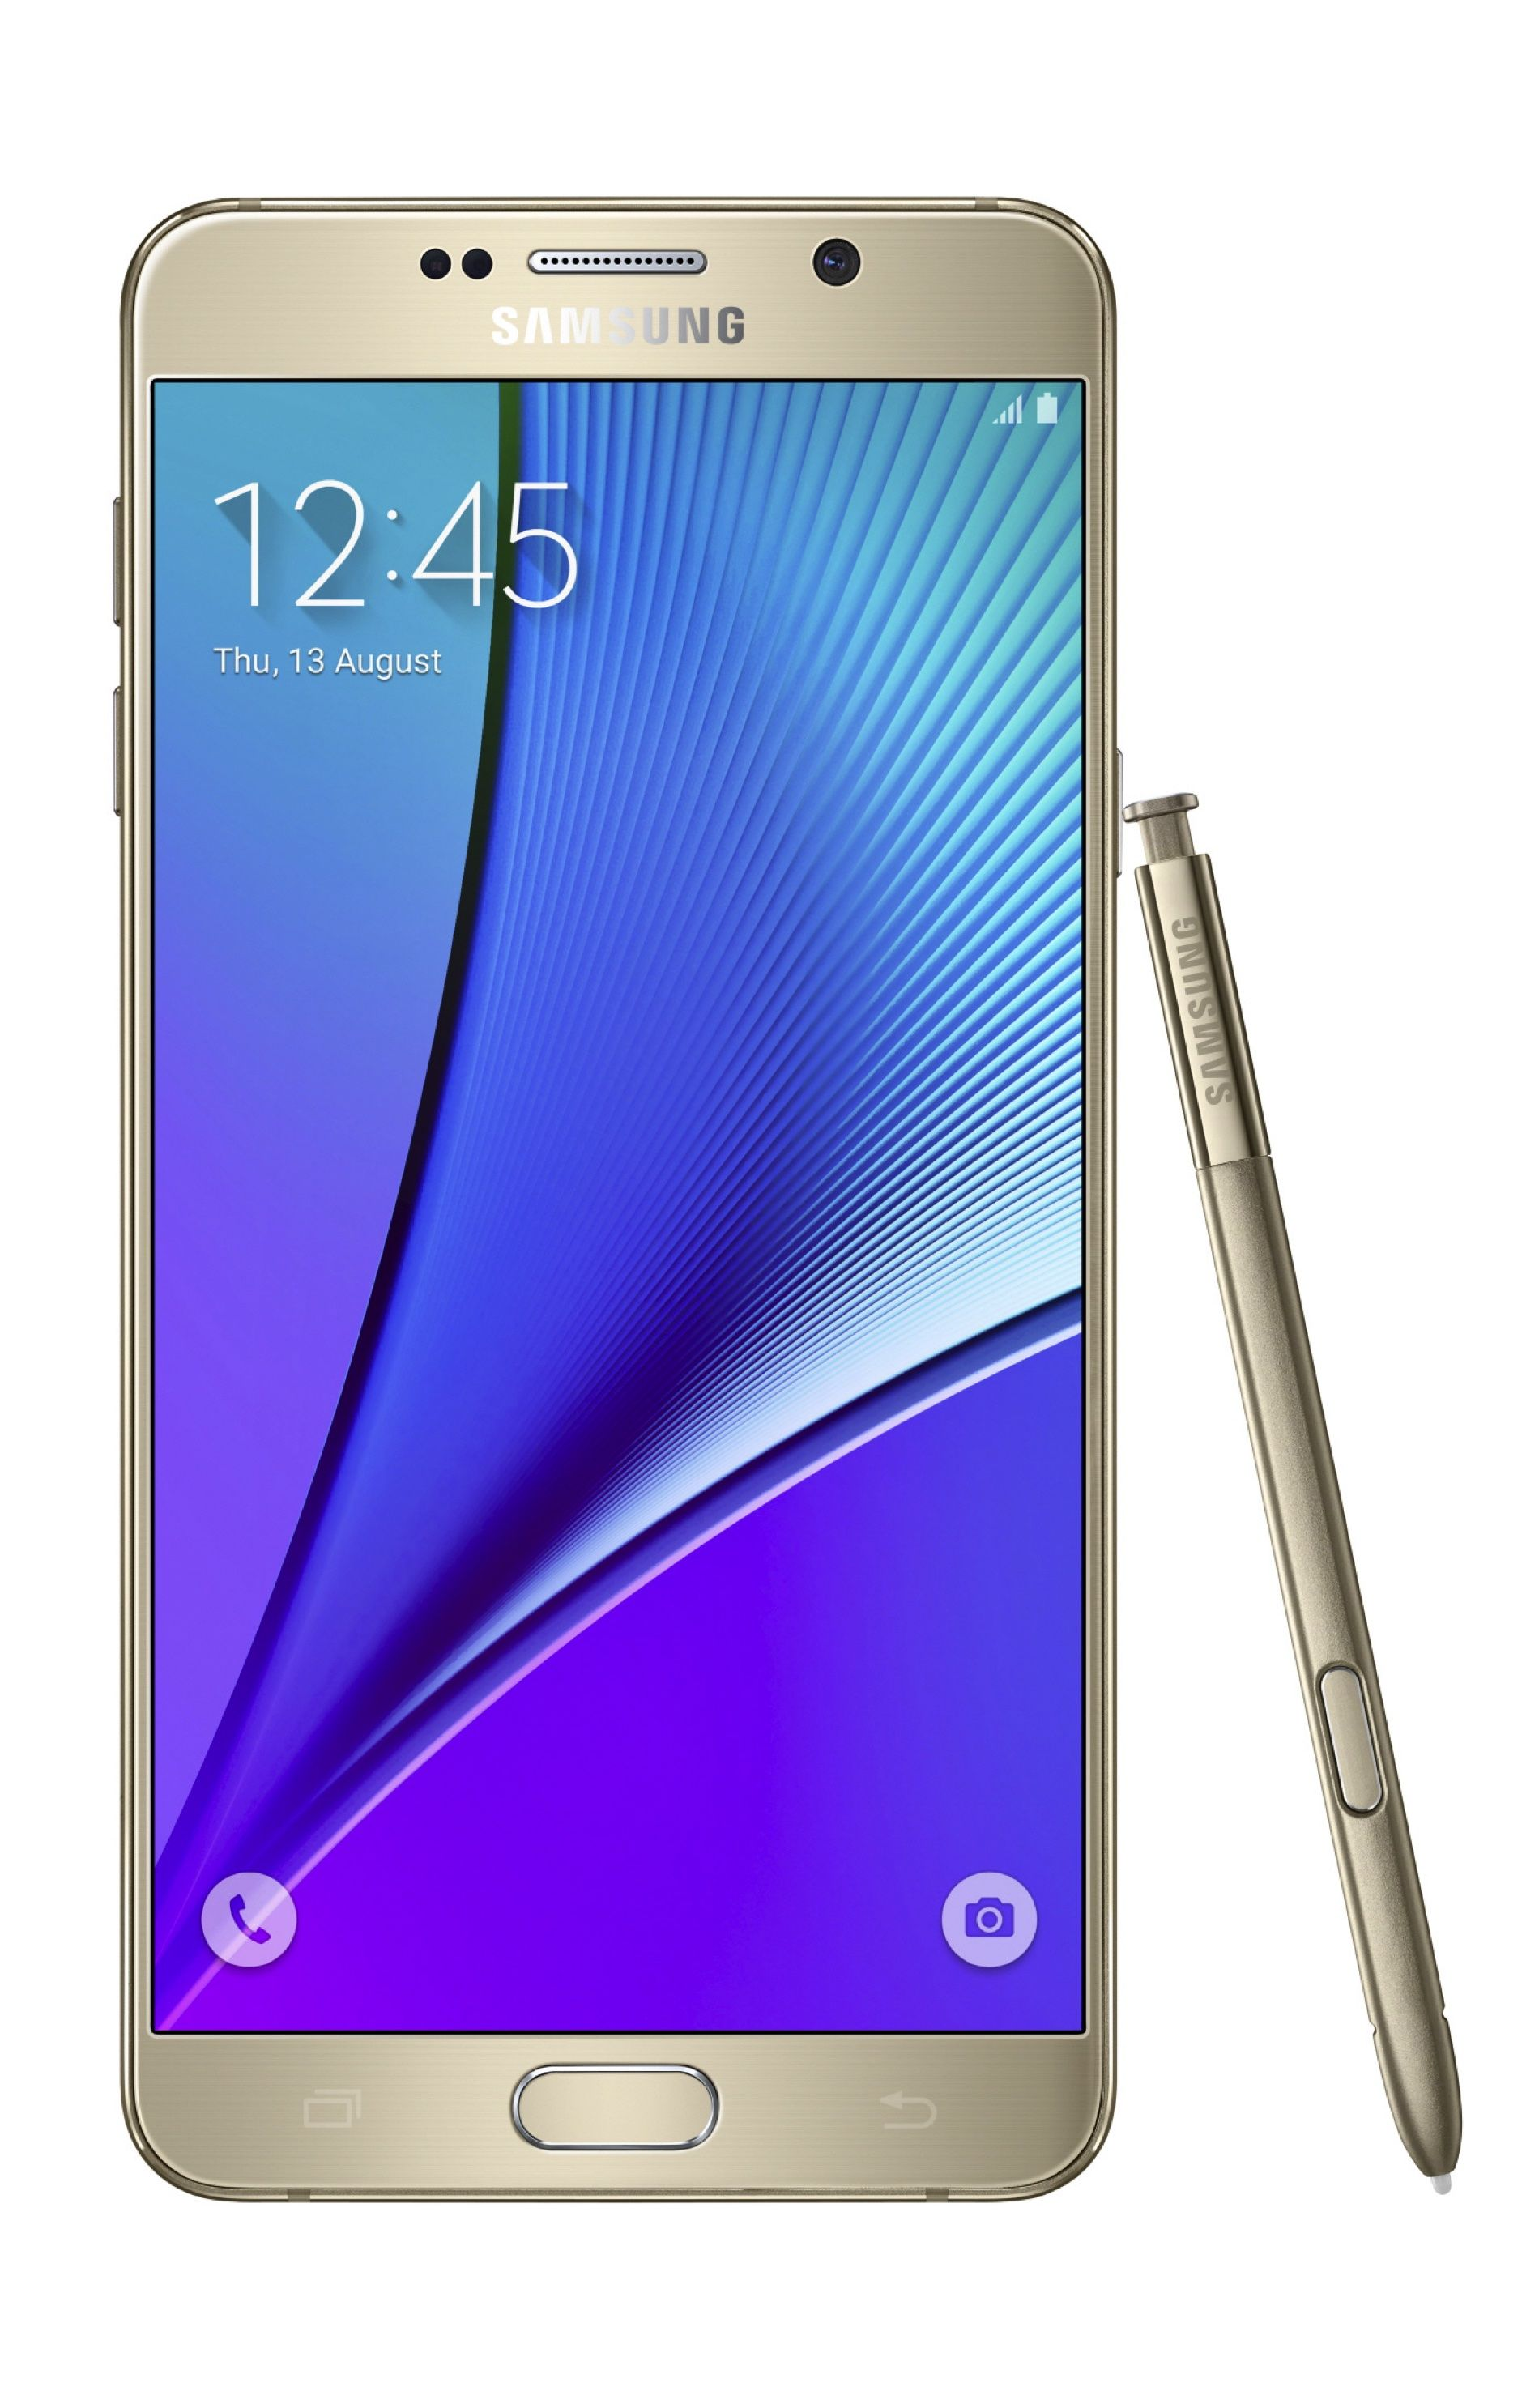 The Samsung Galaxy Note 5 Is Coming To Verizon Wireless Galaxy Note 5 Samsung Galaxy Galaxy Note